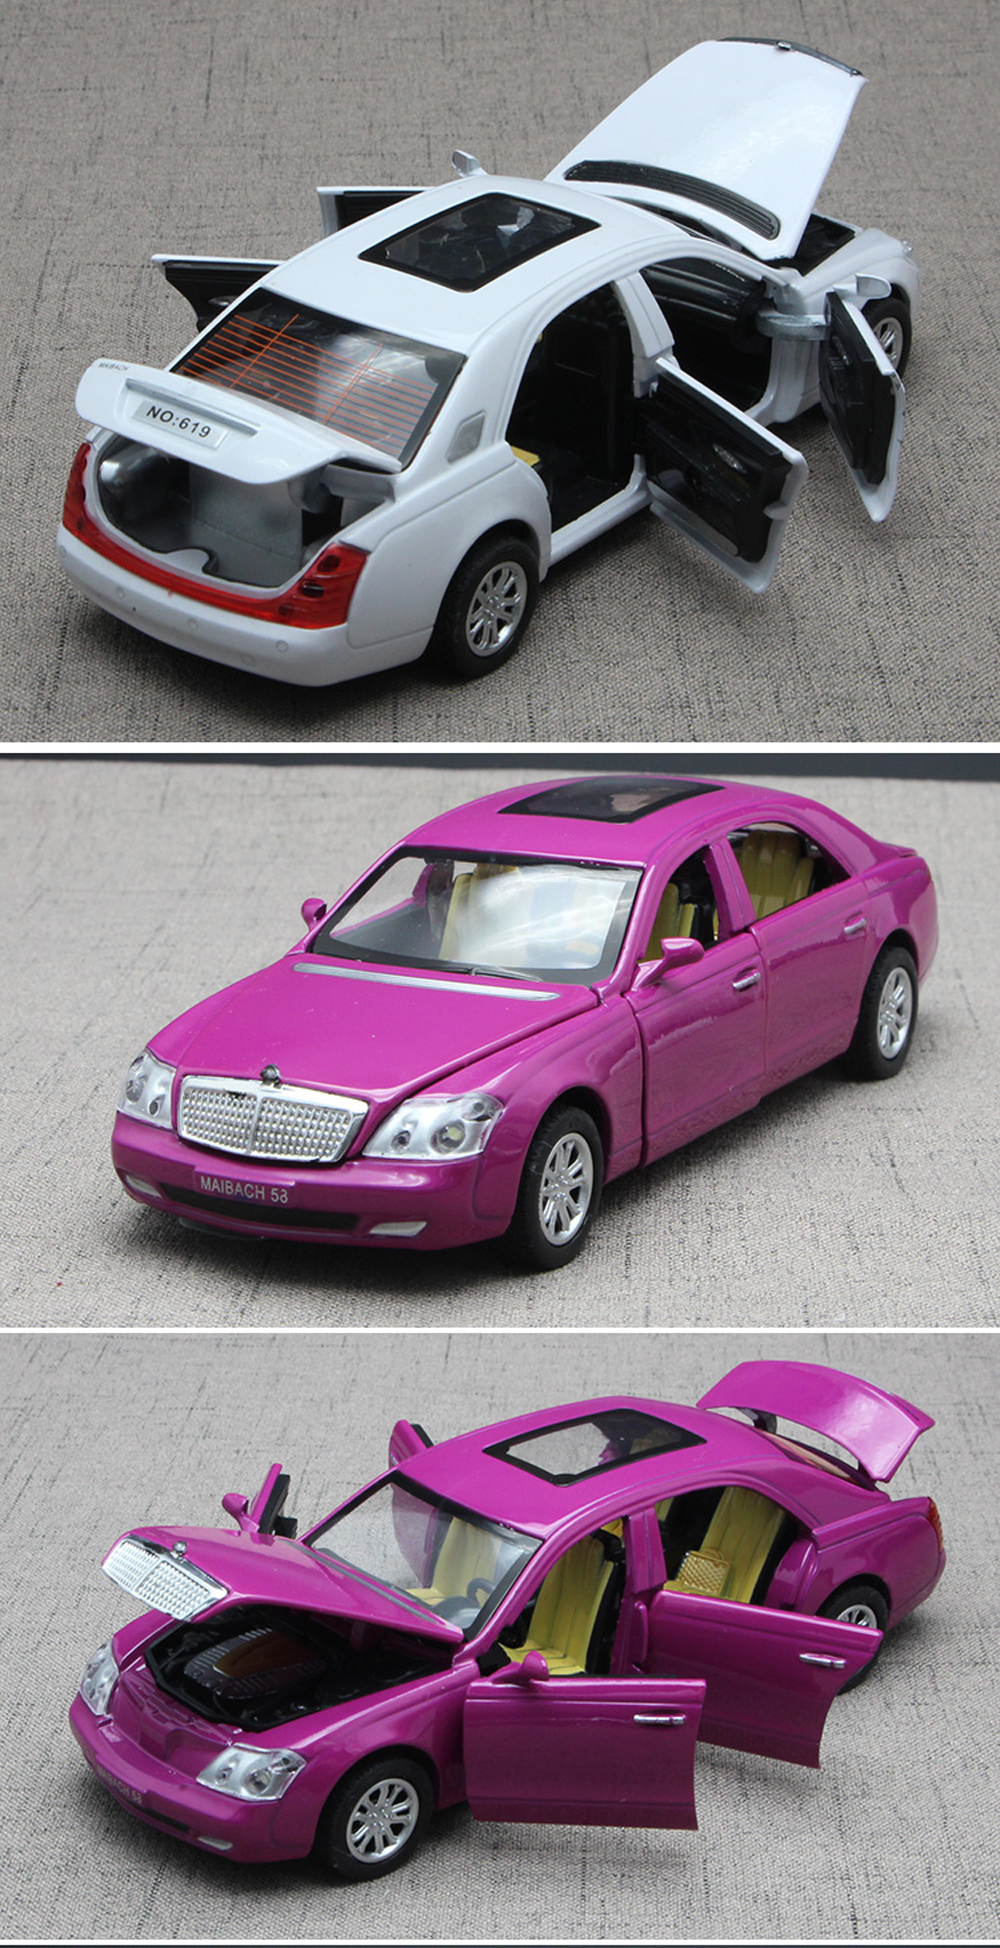 diecast-maybach-model-car-replica-TOy-car_05_06